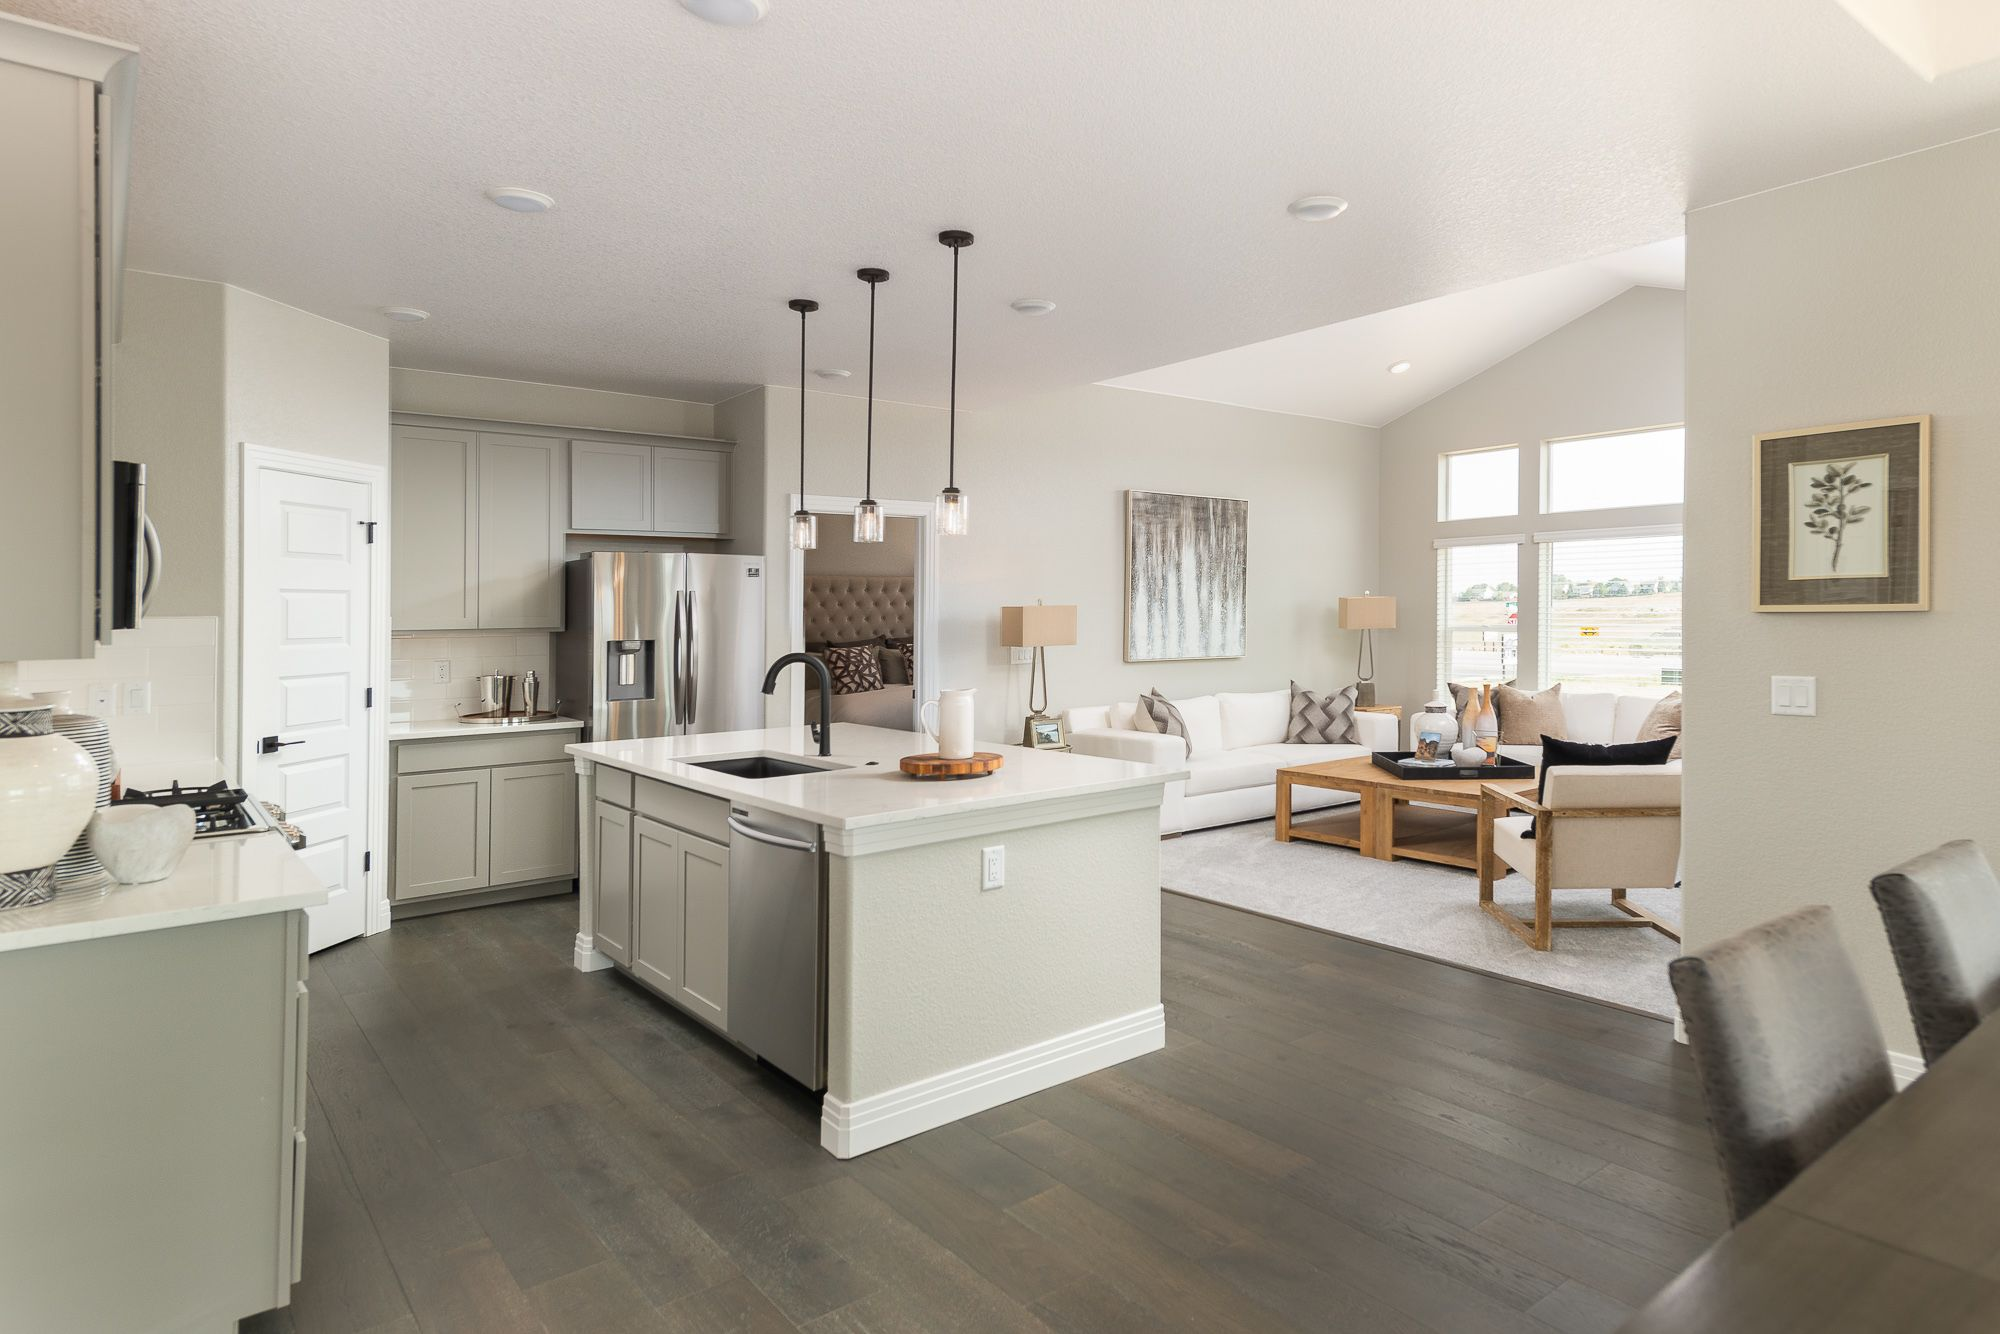 Kitchen featured in the Stella By Lokal Homes in Fort Collins-Loveland, CO